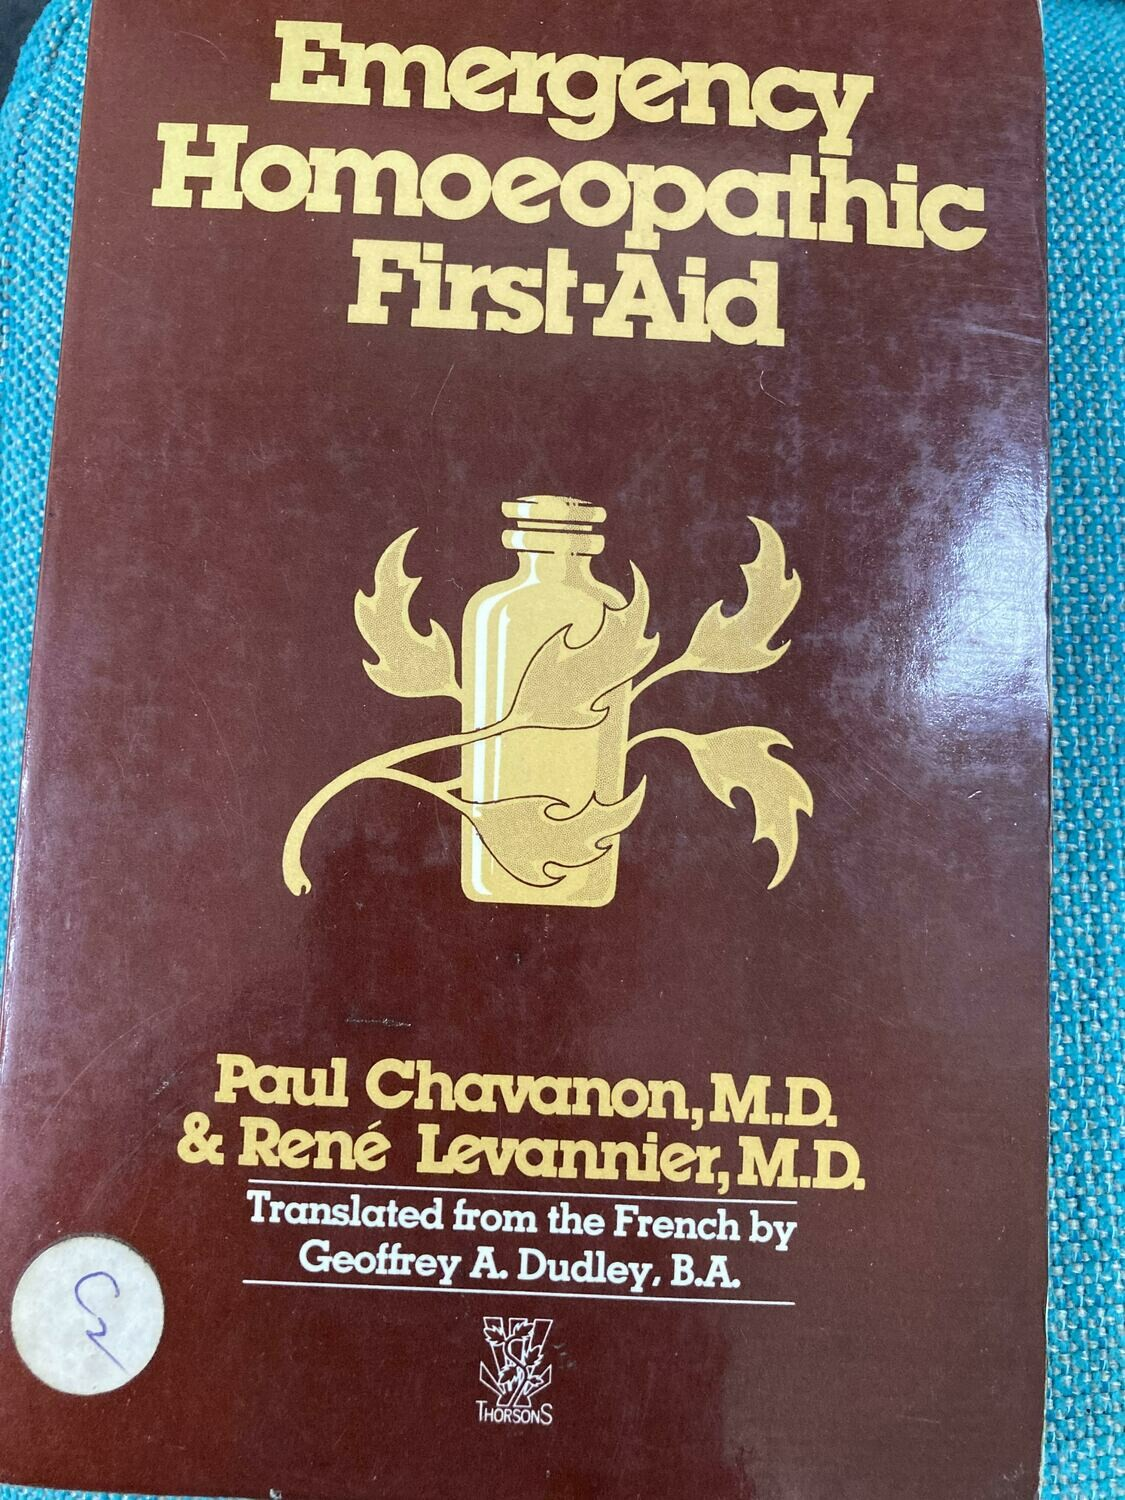 Emergency Homoeopathic first-aid*